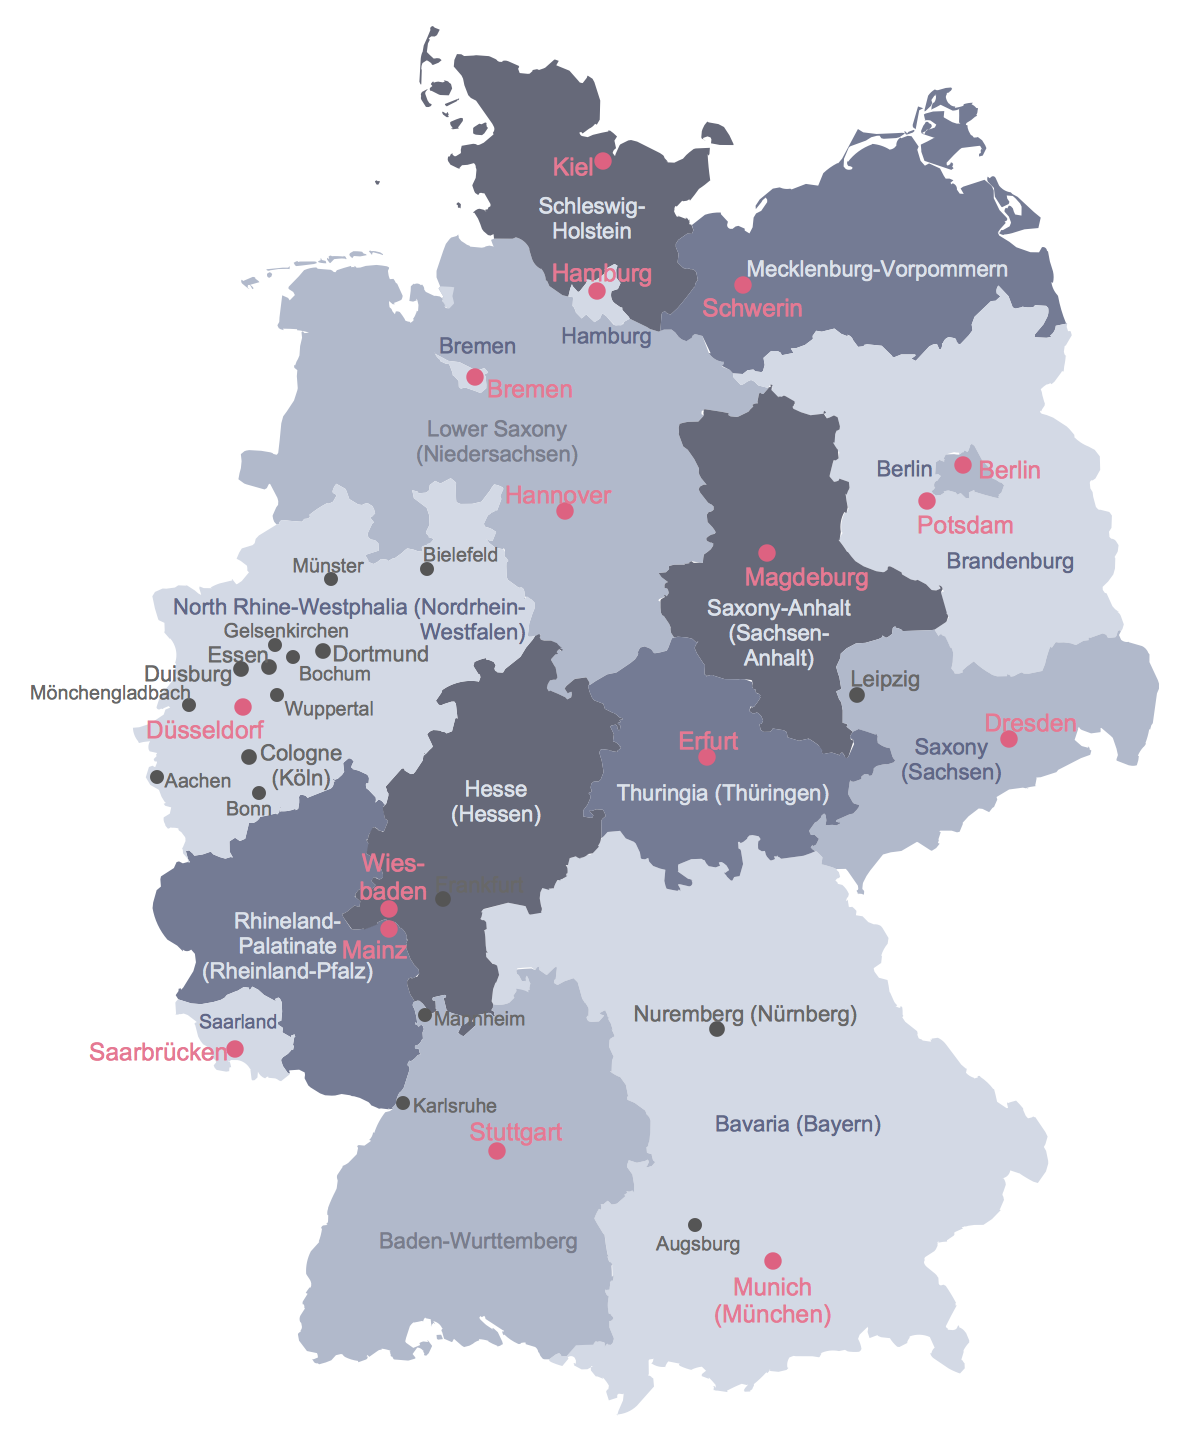 Map Of Germany Spatial Infographics Design Elements Location - Germany map location